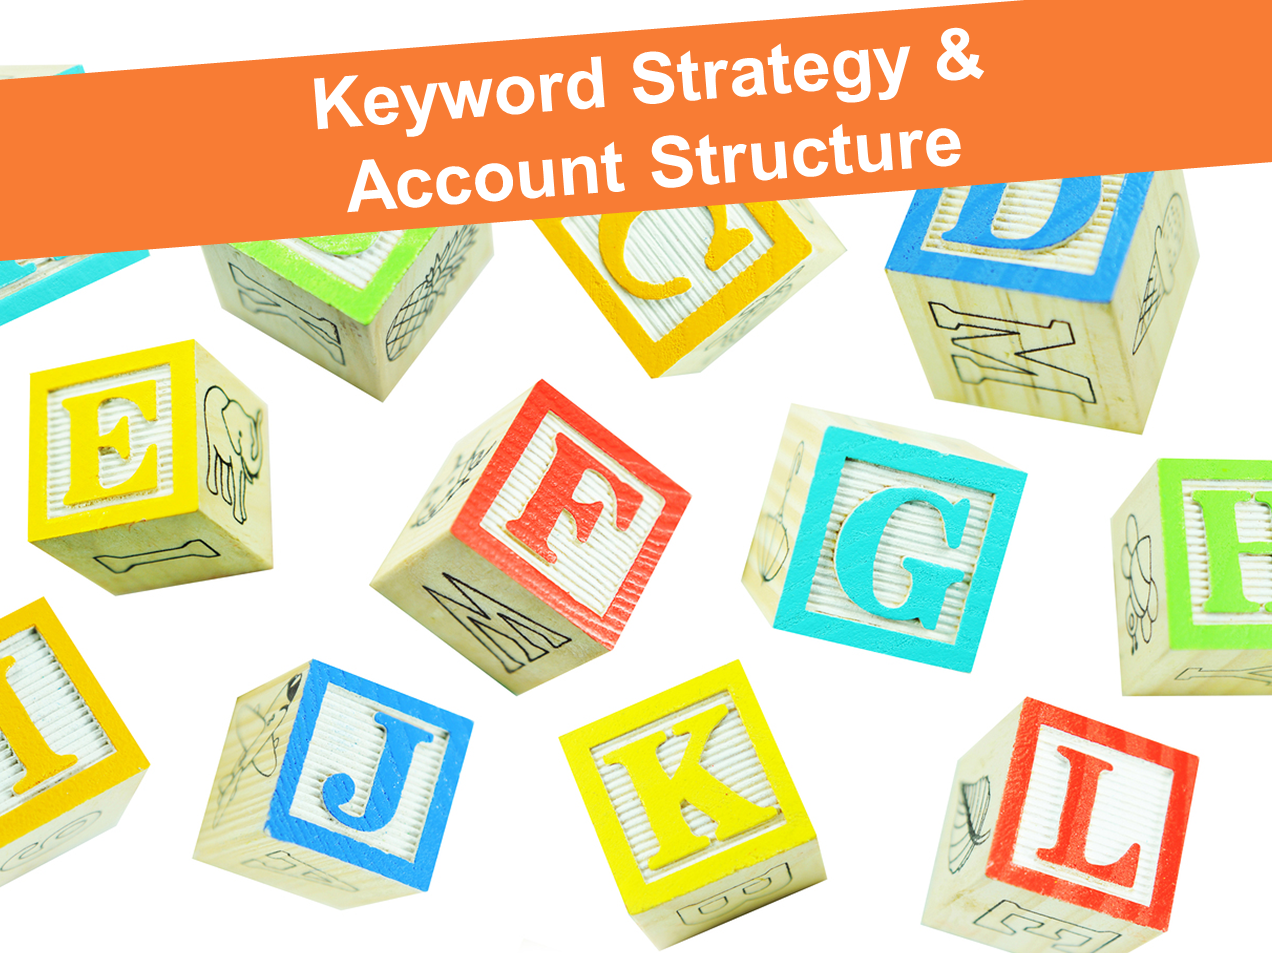 KEYWORD STRATEGY AND ACCOUNT STRUCTURE